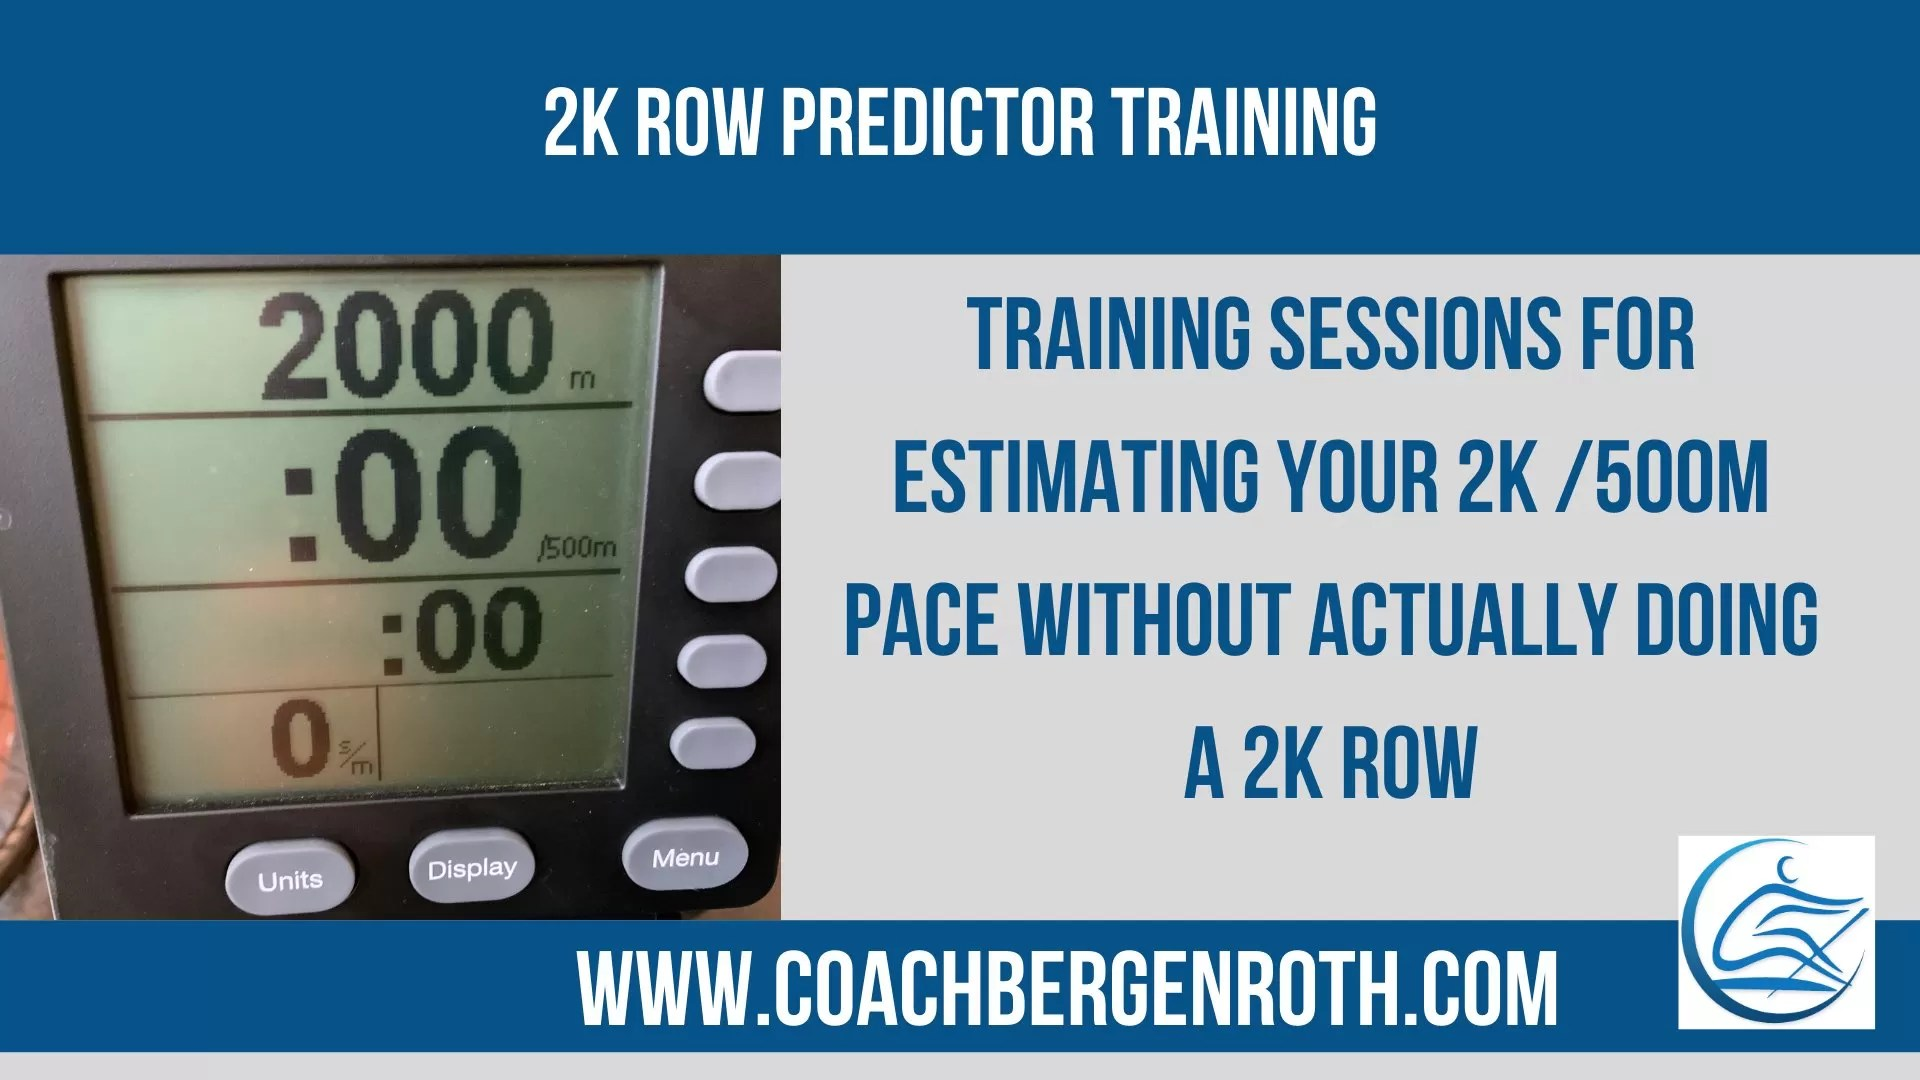 2k Row Predictor Training